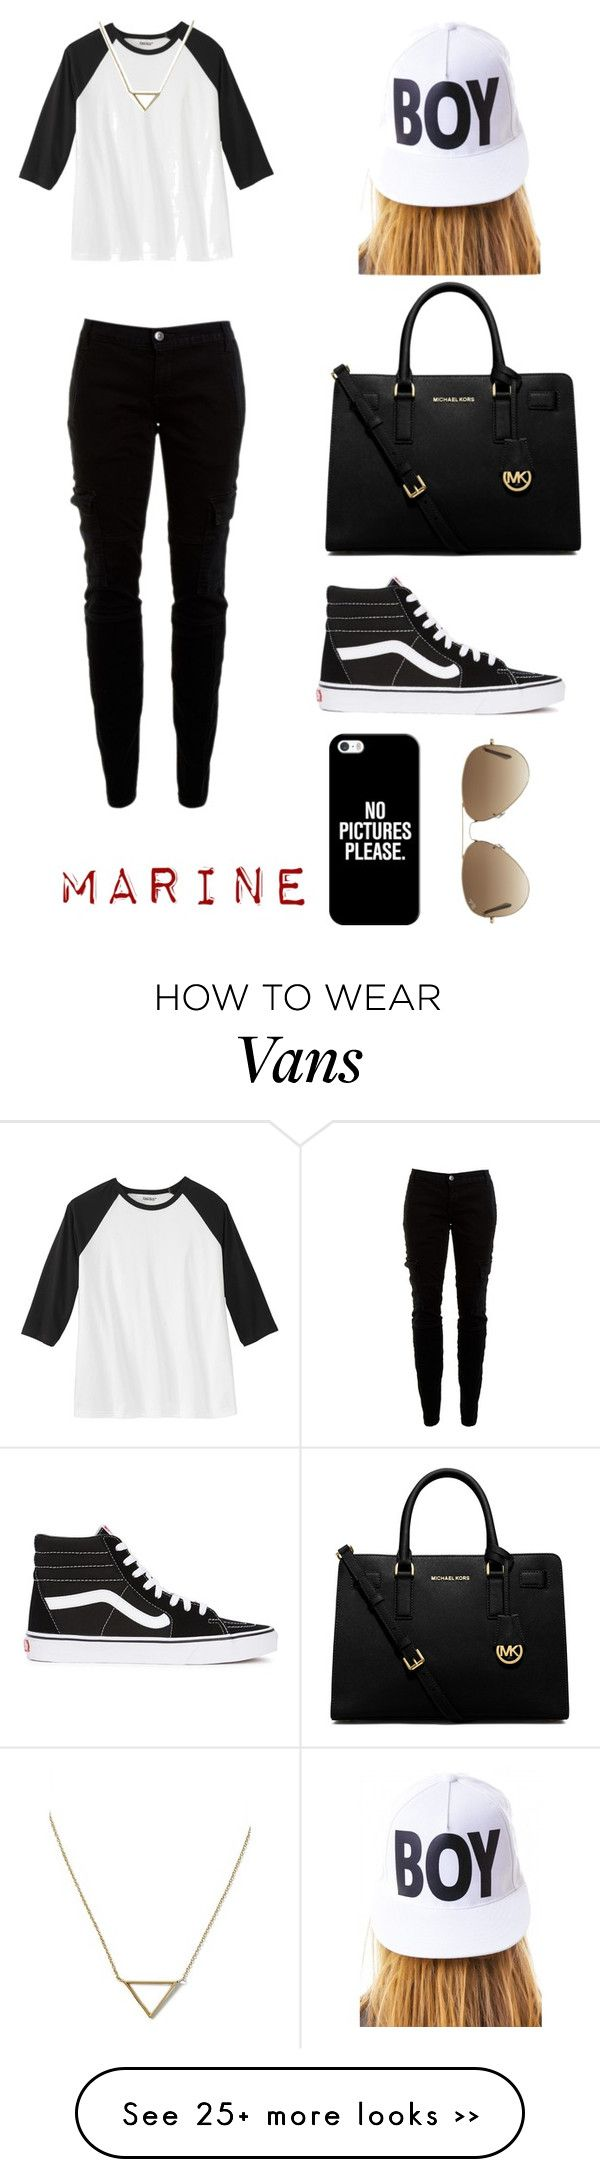 """""""Sans titre #63"""" by nailup on Polyvore featuring Joie, MICHAEL Michael Kors, Vans, Casetify, Ray-Ban, BOY London and Banana Republic https://twitter.com/faefmgaifnae/status/895102947775750144"""